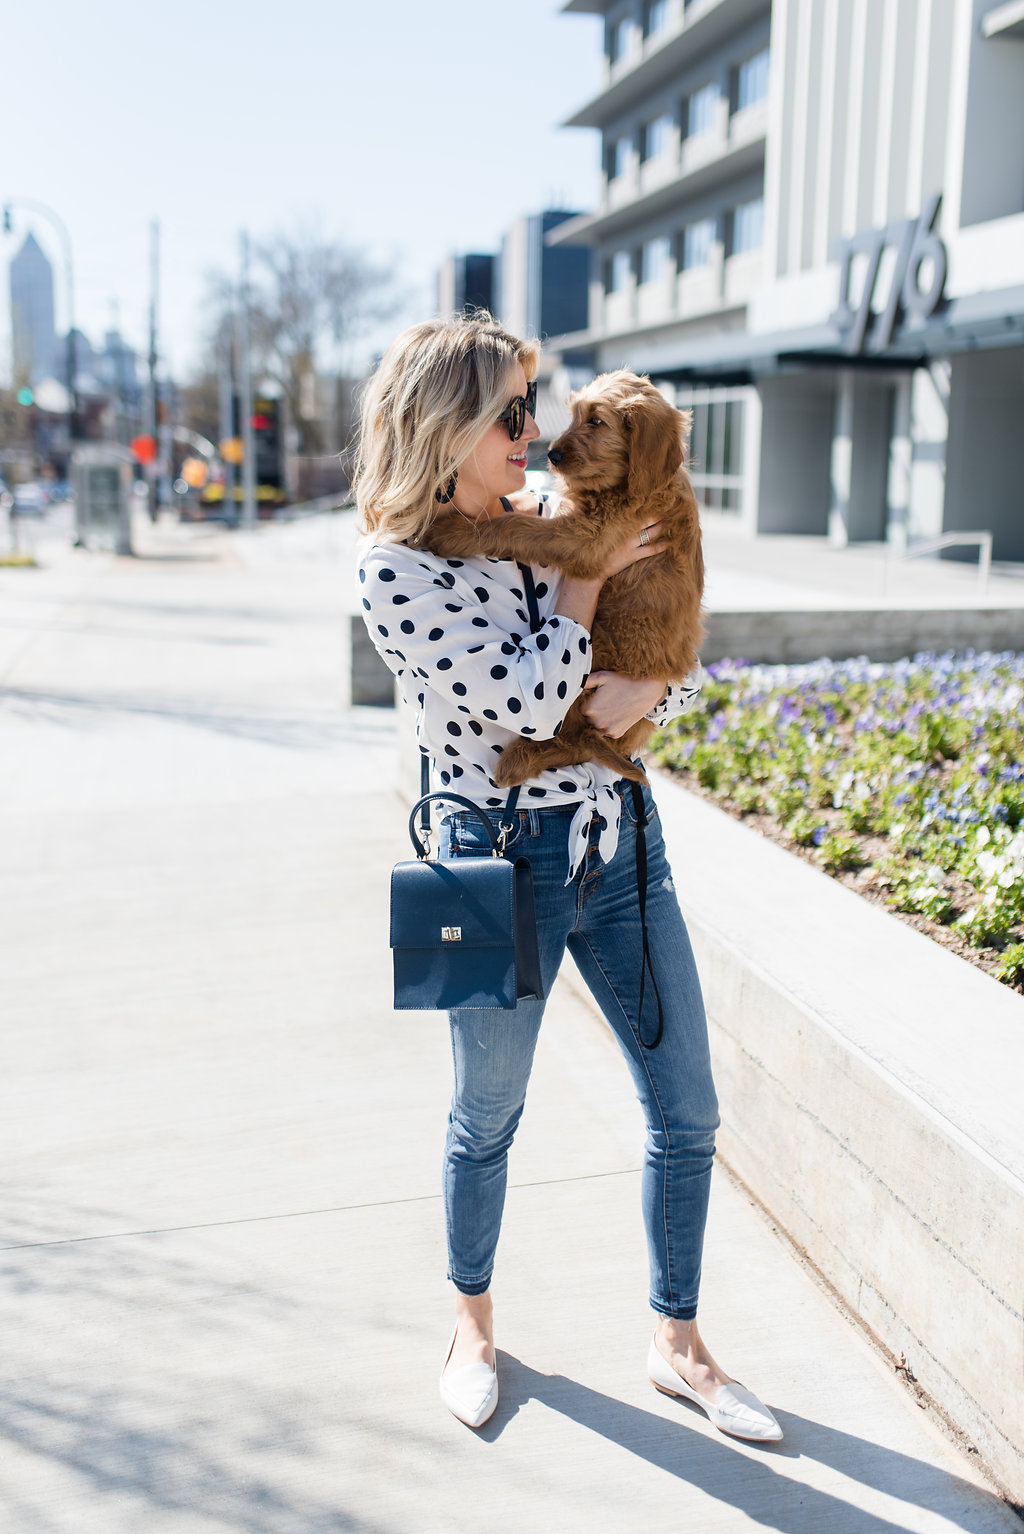 button up jeans and a tie front polka dot blouse